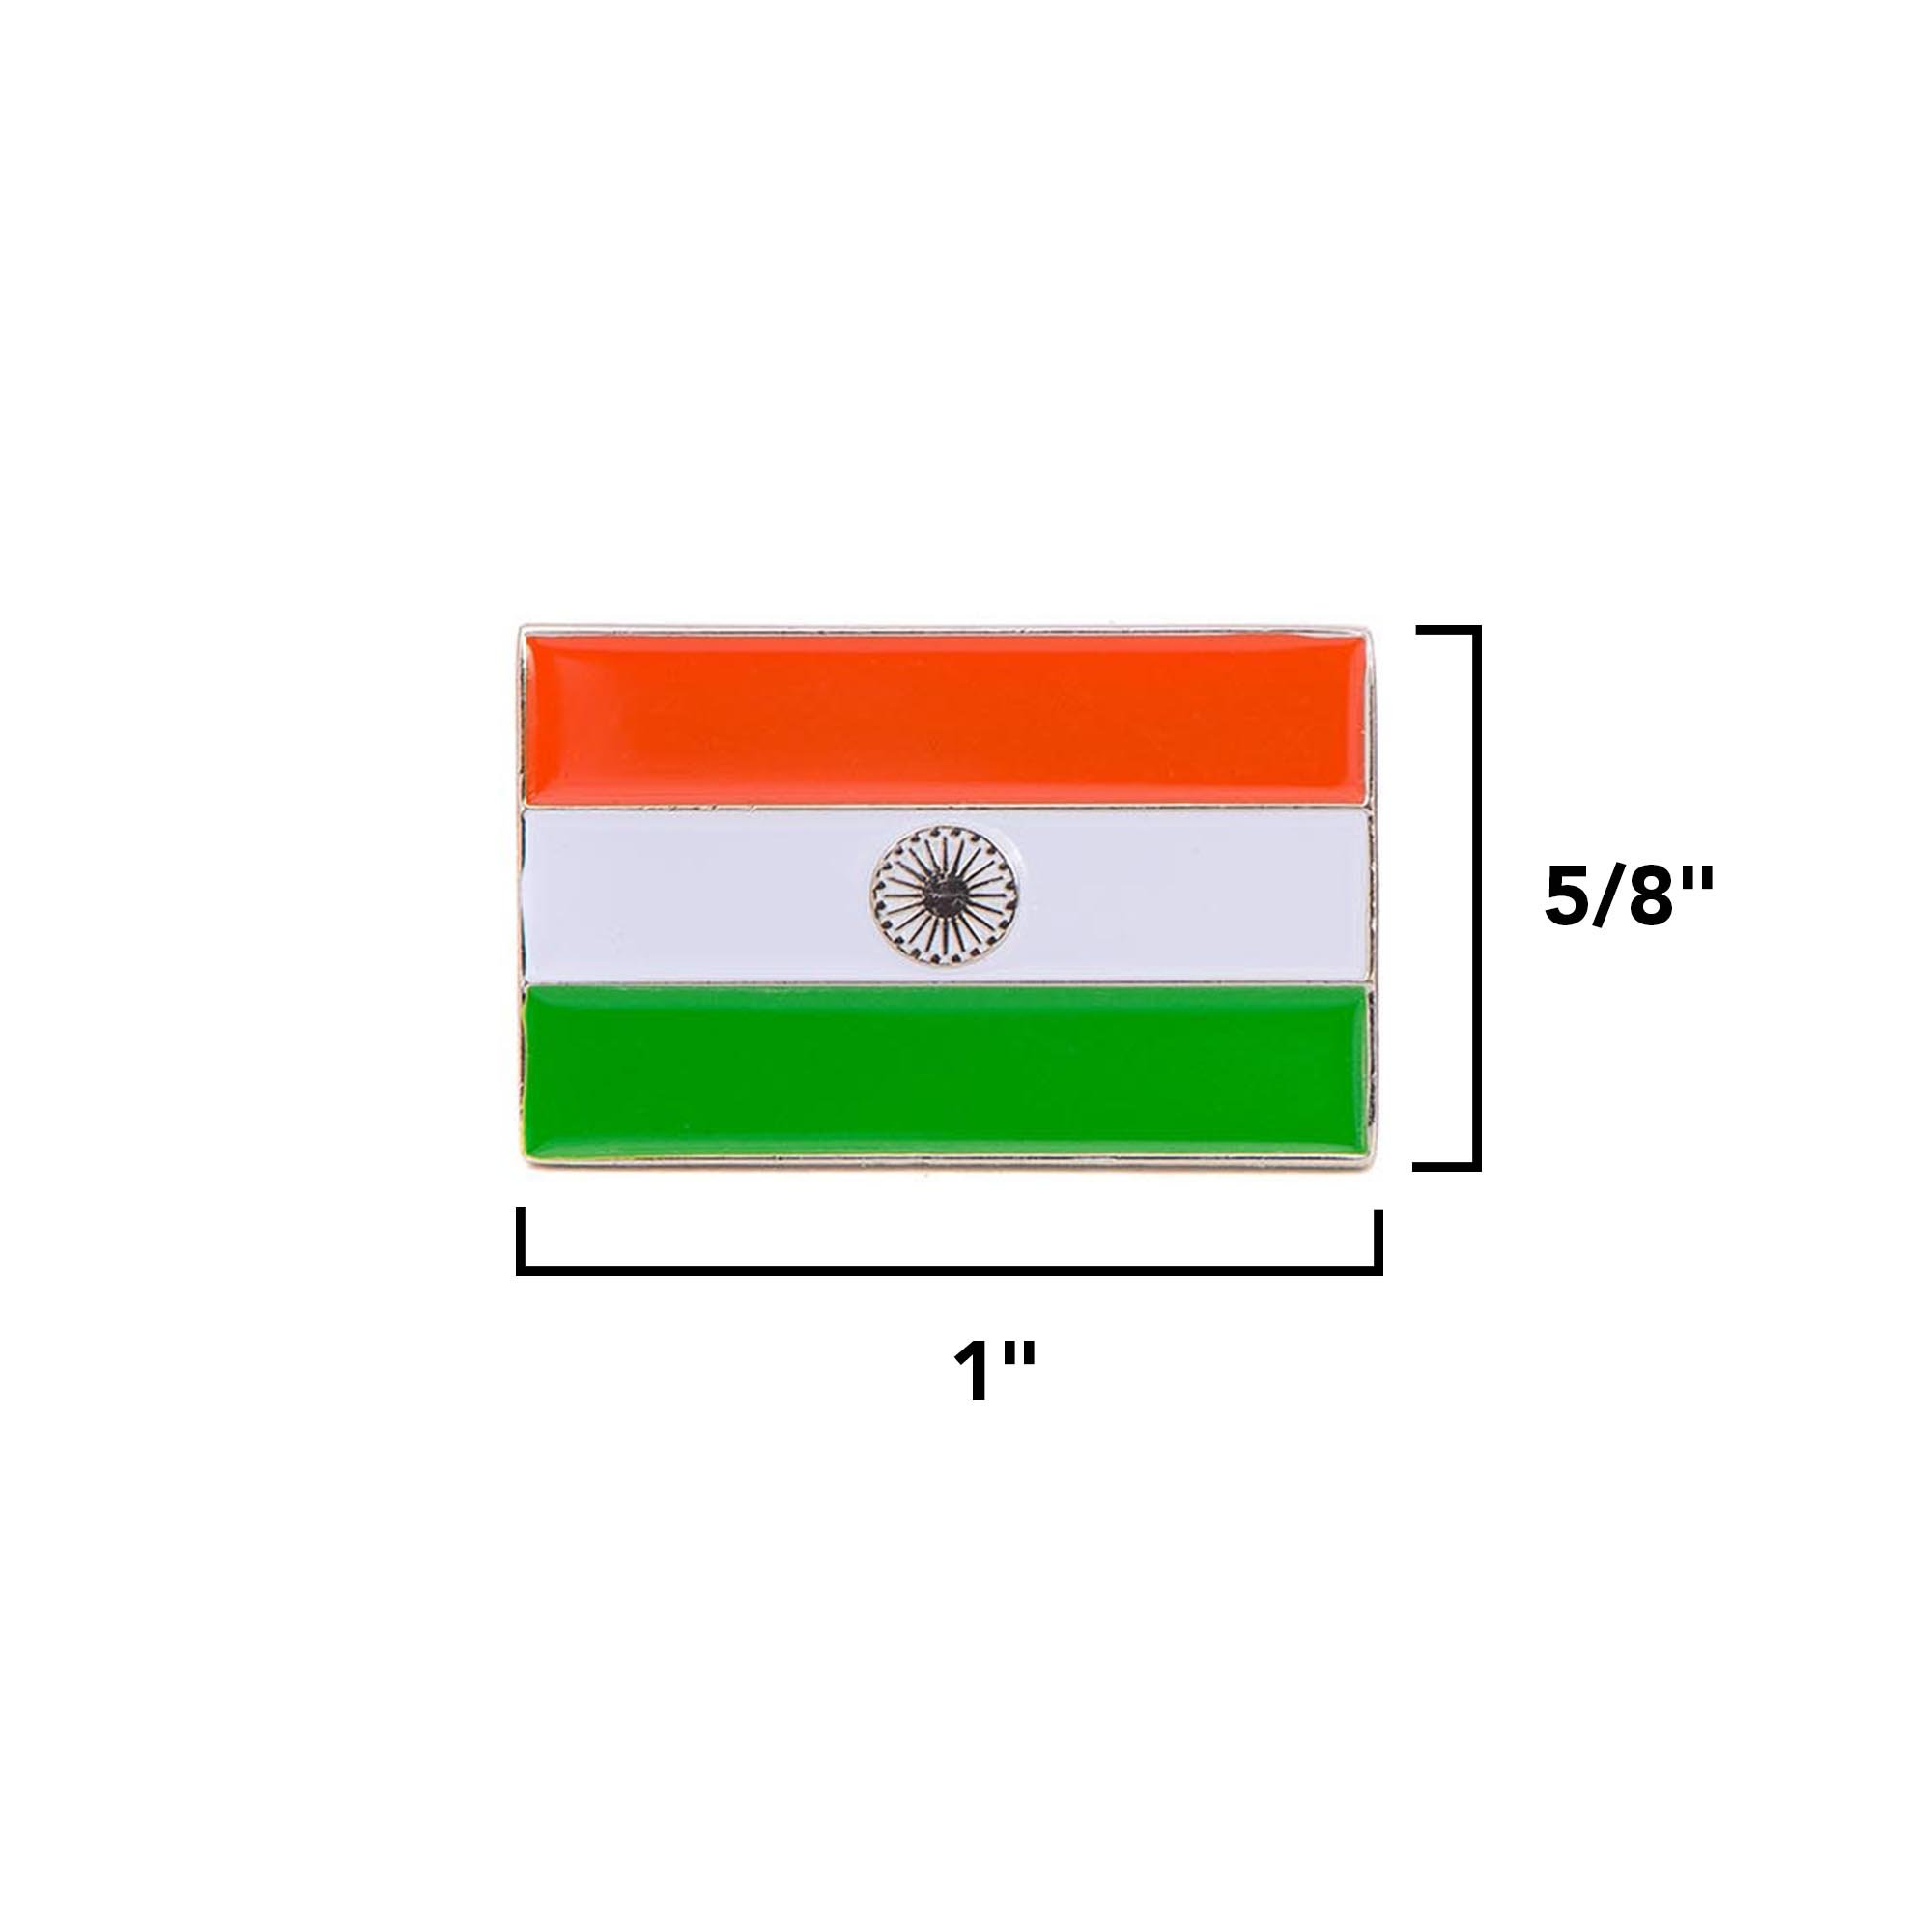 Desert Cactus India Rectangle Country Flag Cufflinks Formal Wear Blazer For French Cuff Shirt Indian by Desert Cactus (Image #2)